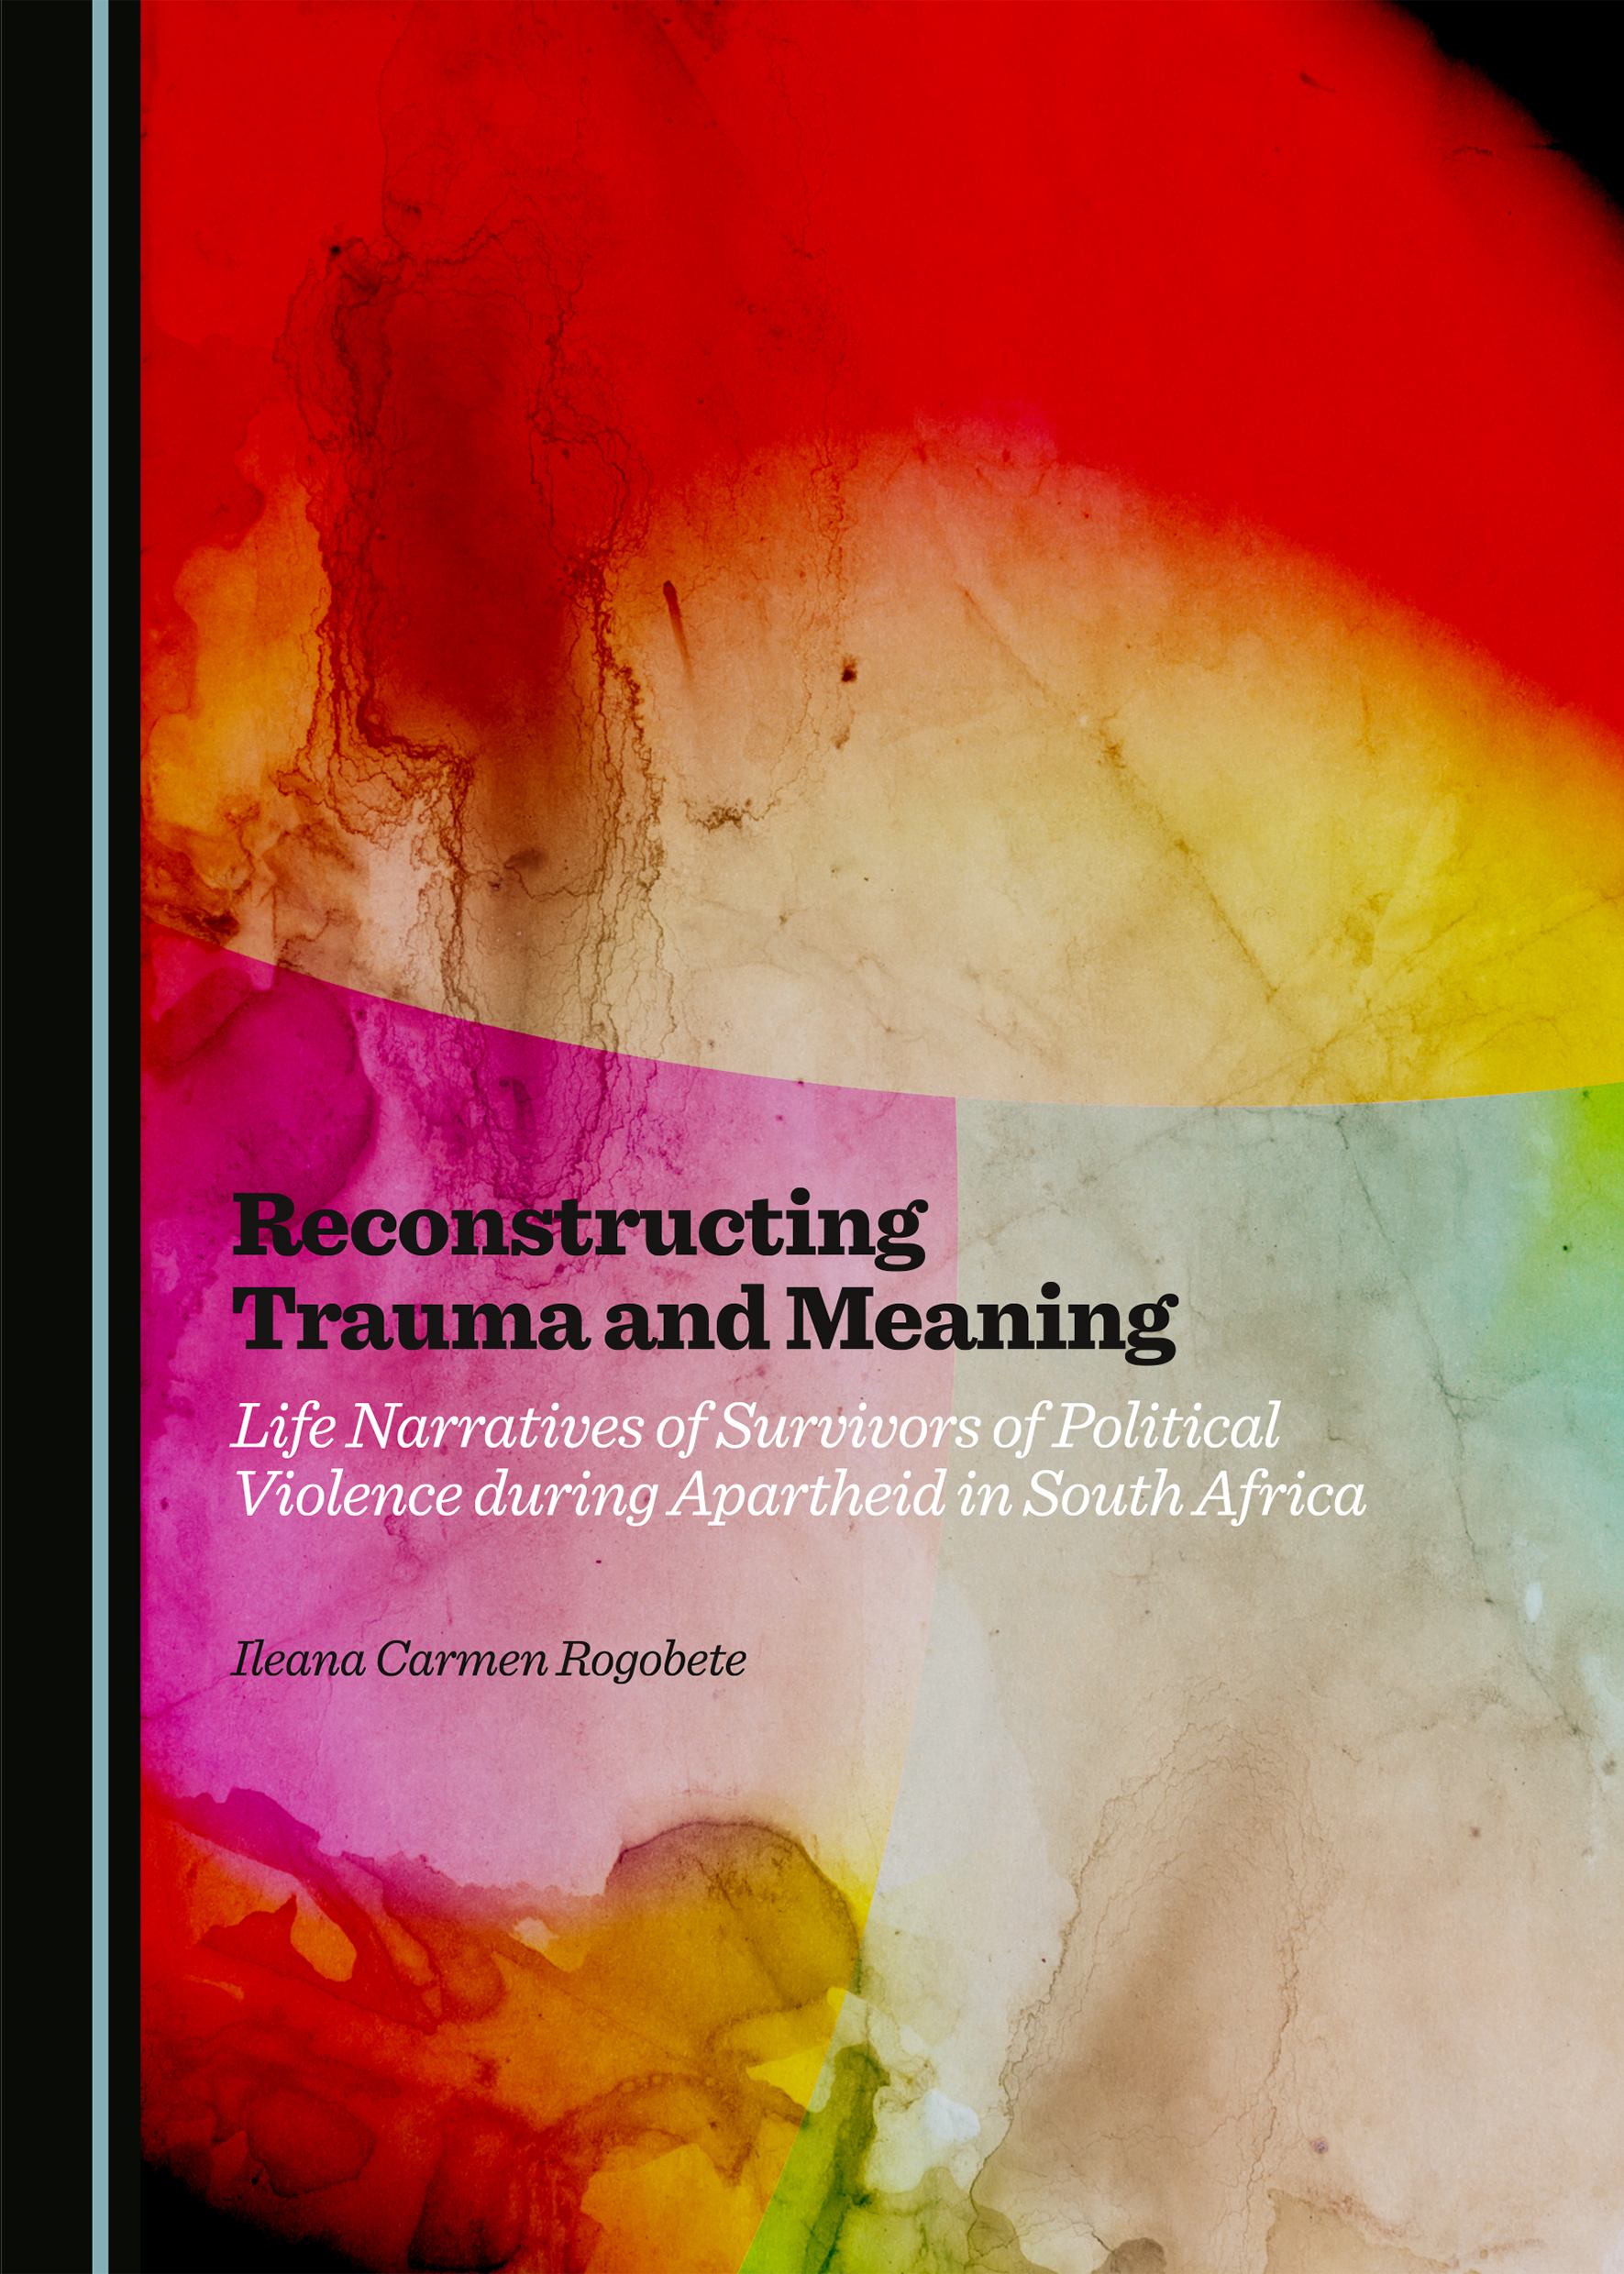 Reconstructing Trauma and Meaning: Life Narratives of Survivors of Political Violence during Apartheid in South Africa